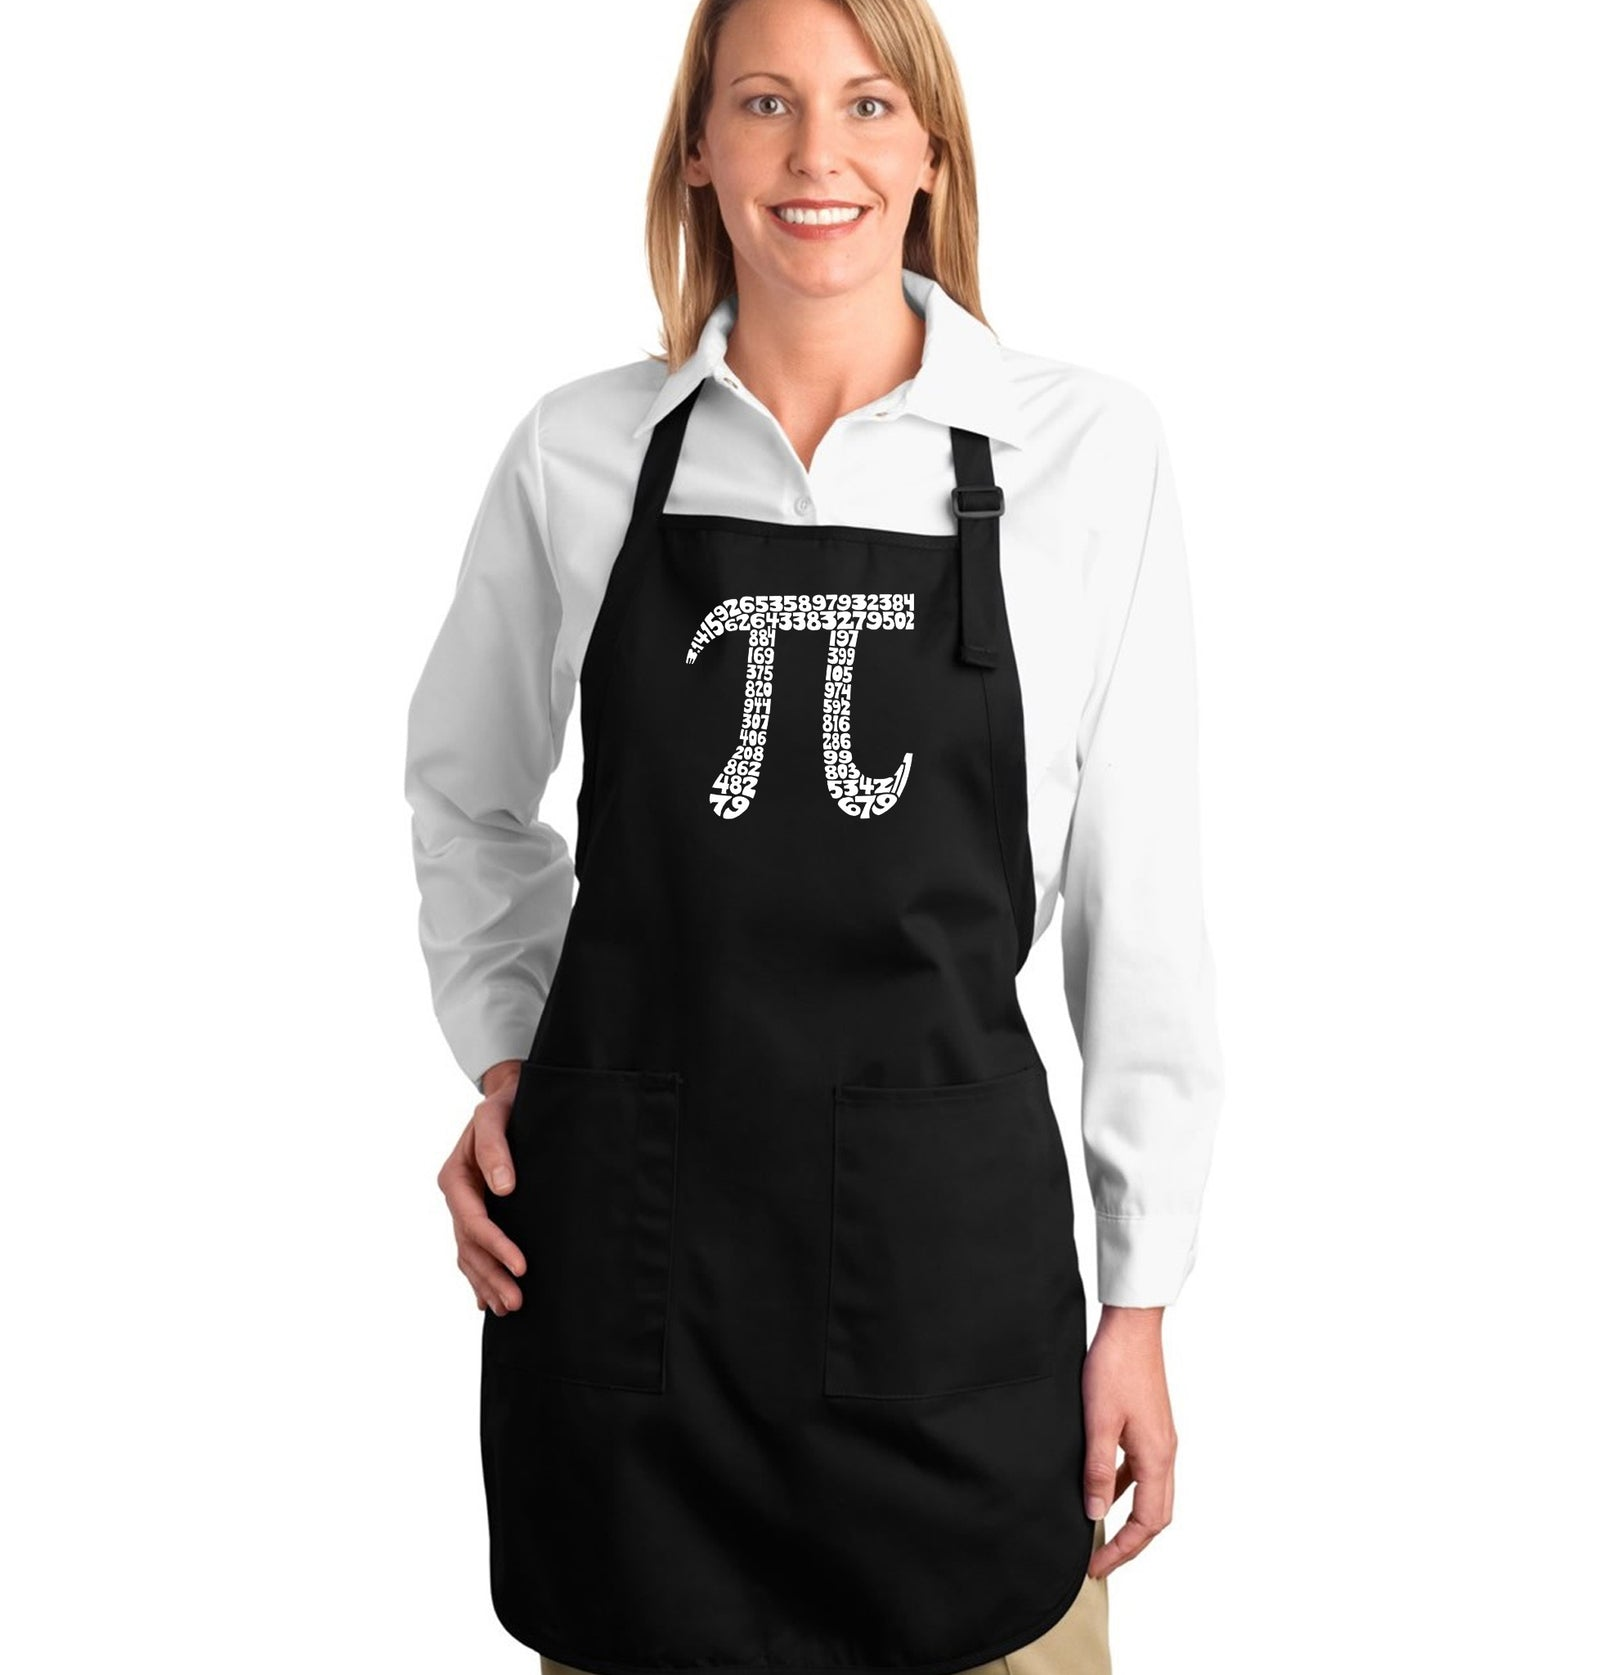 Full Length Apron - THE FIRST 100 DIGITS OF PI